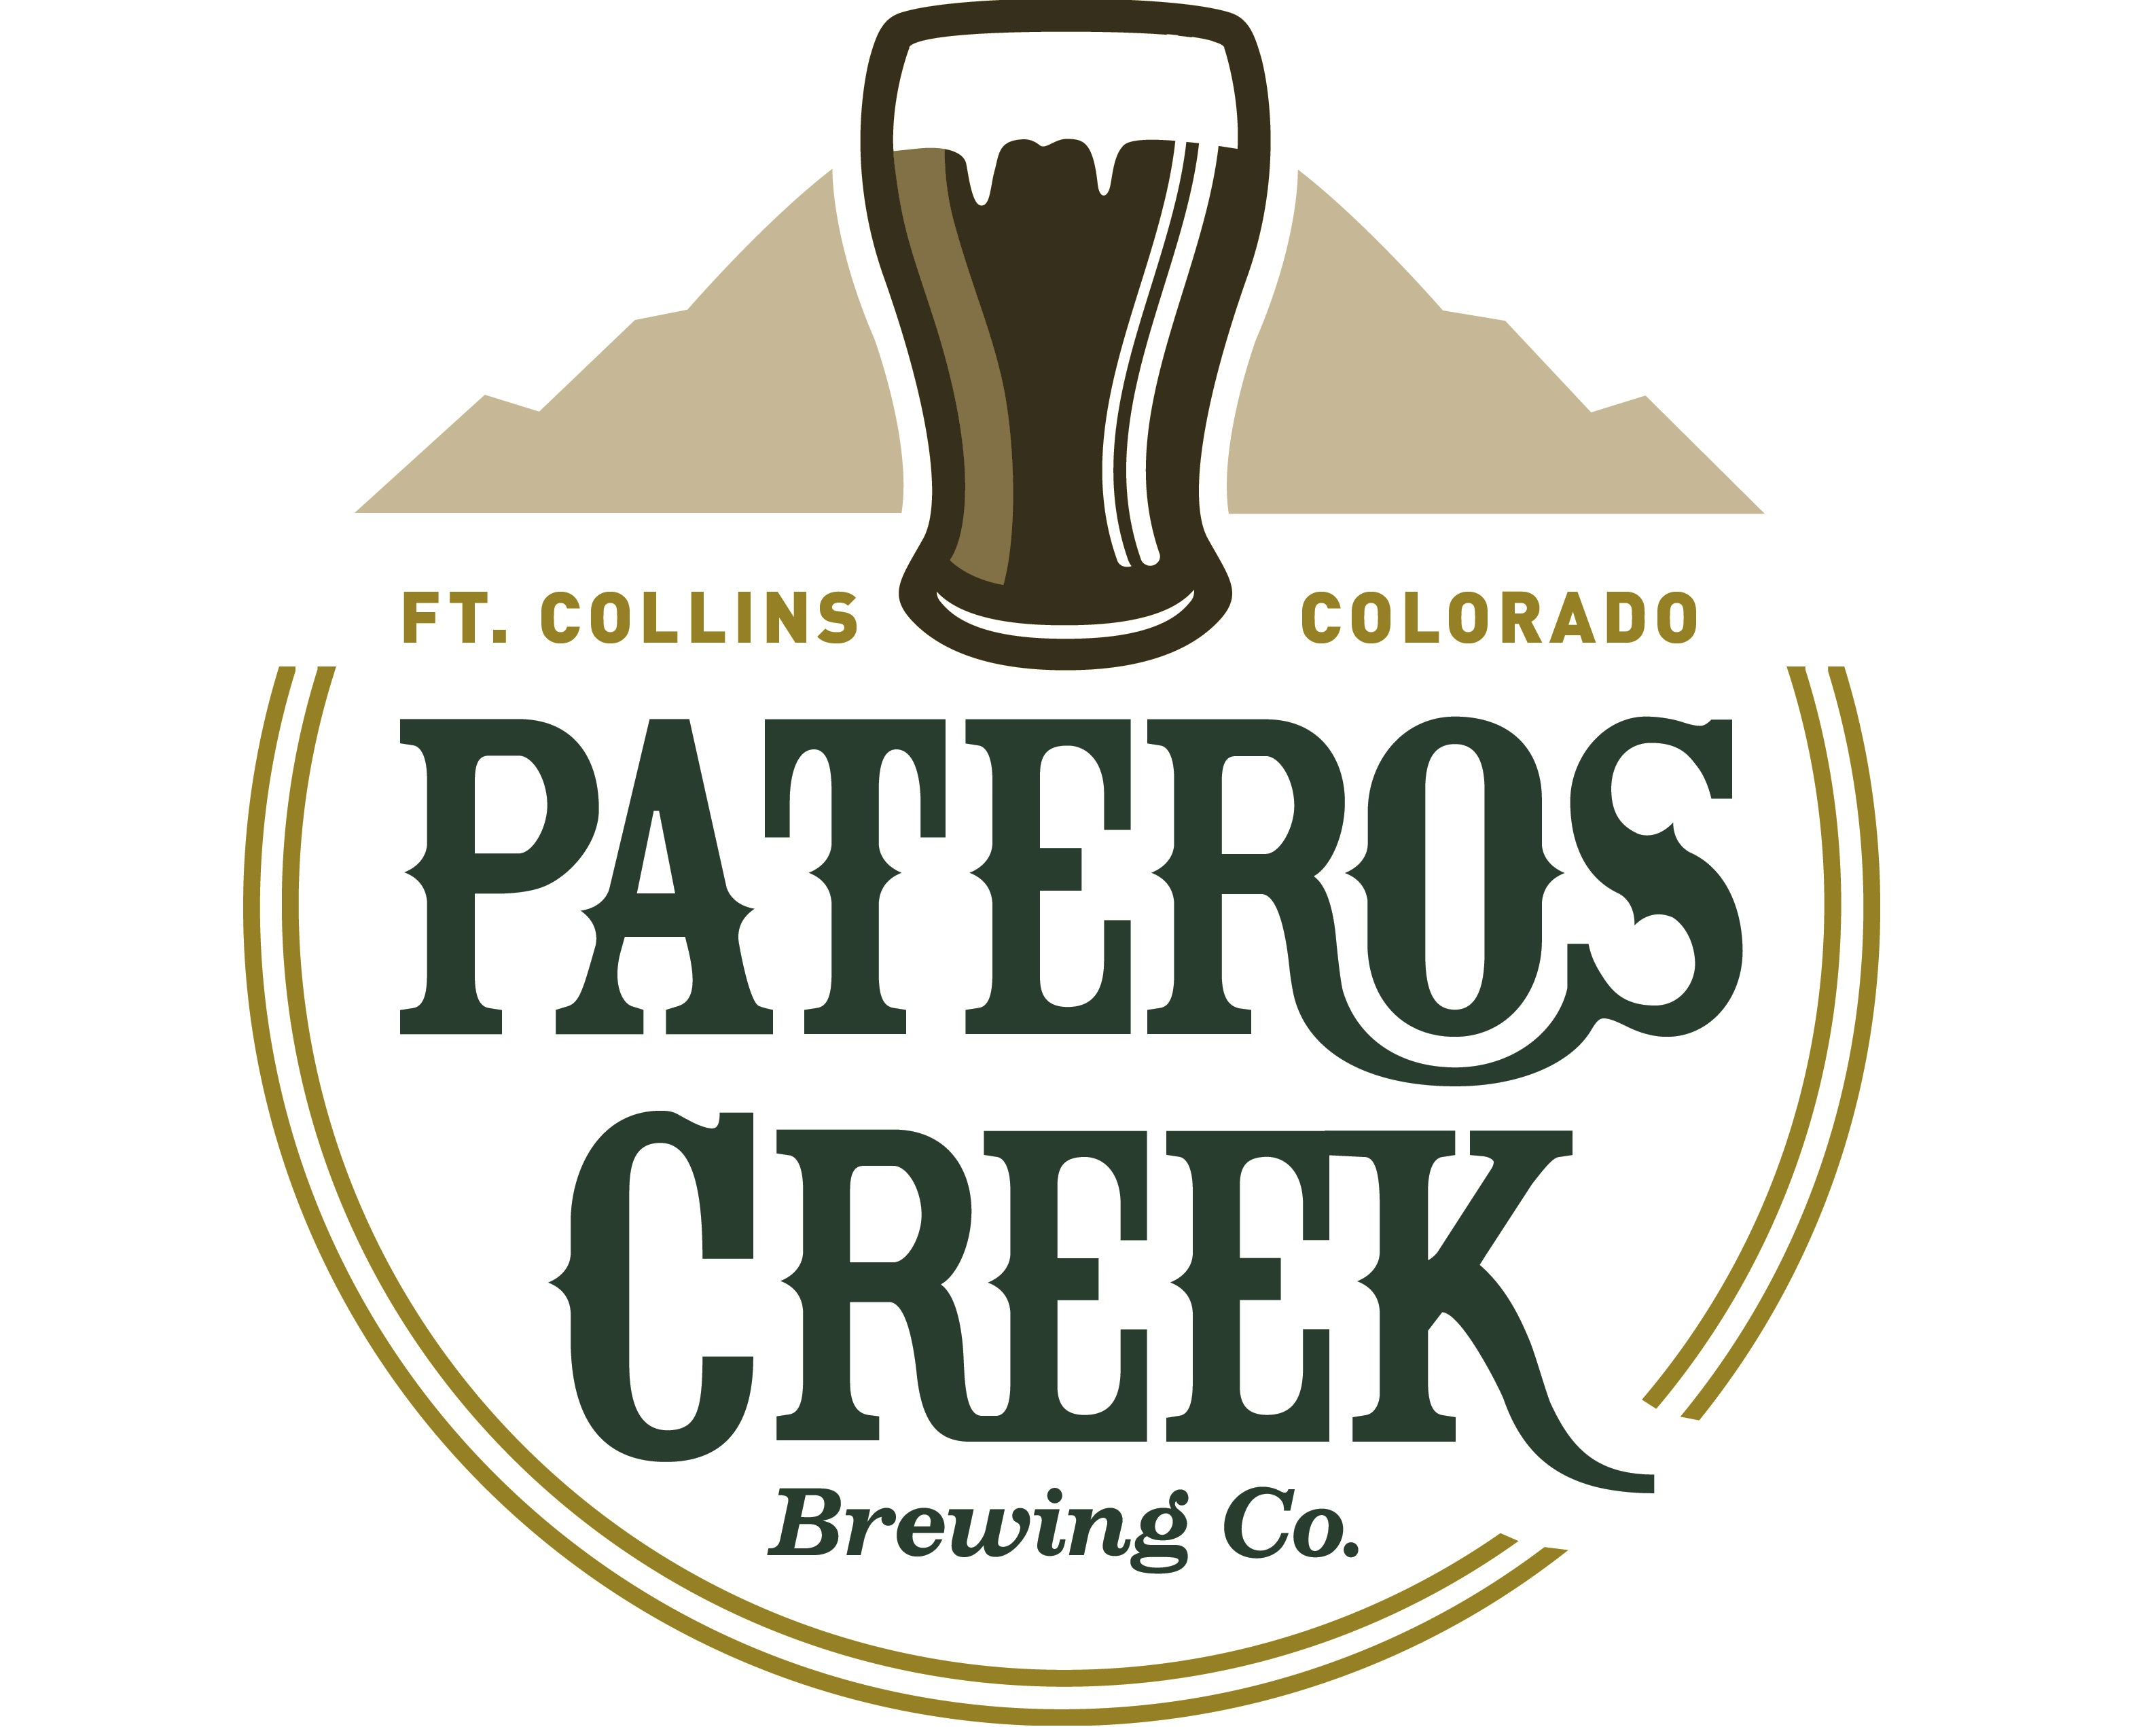 Pateros Creek Brewing